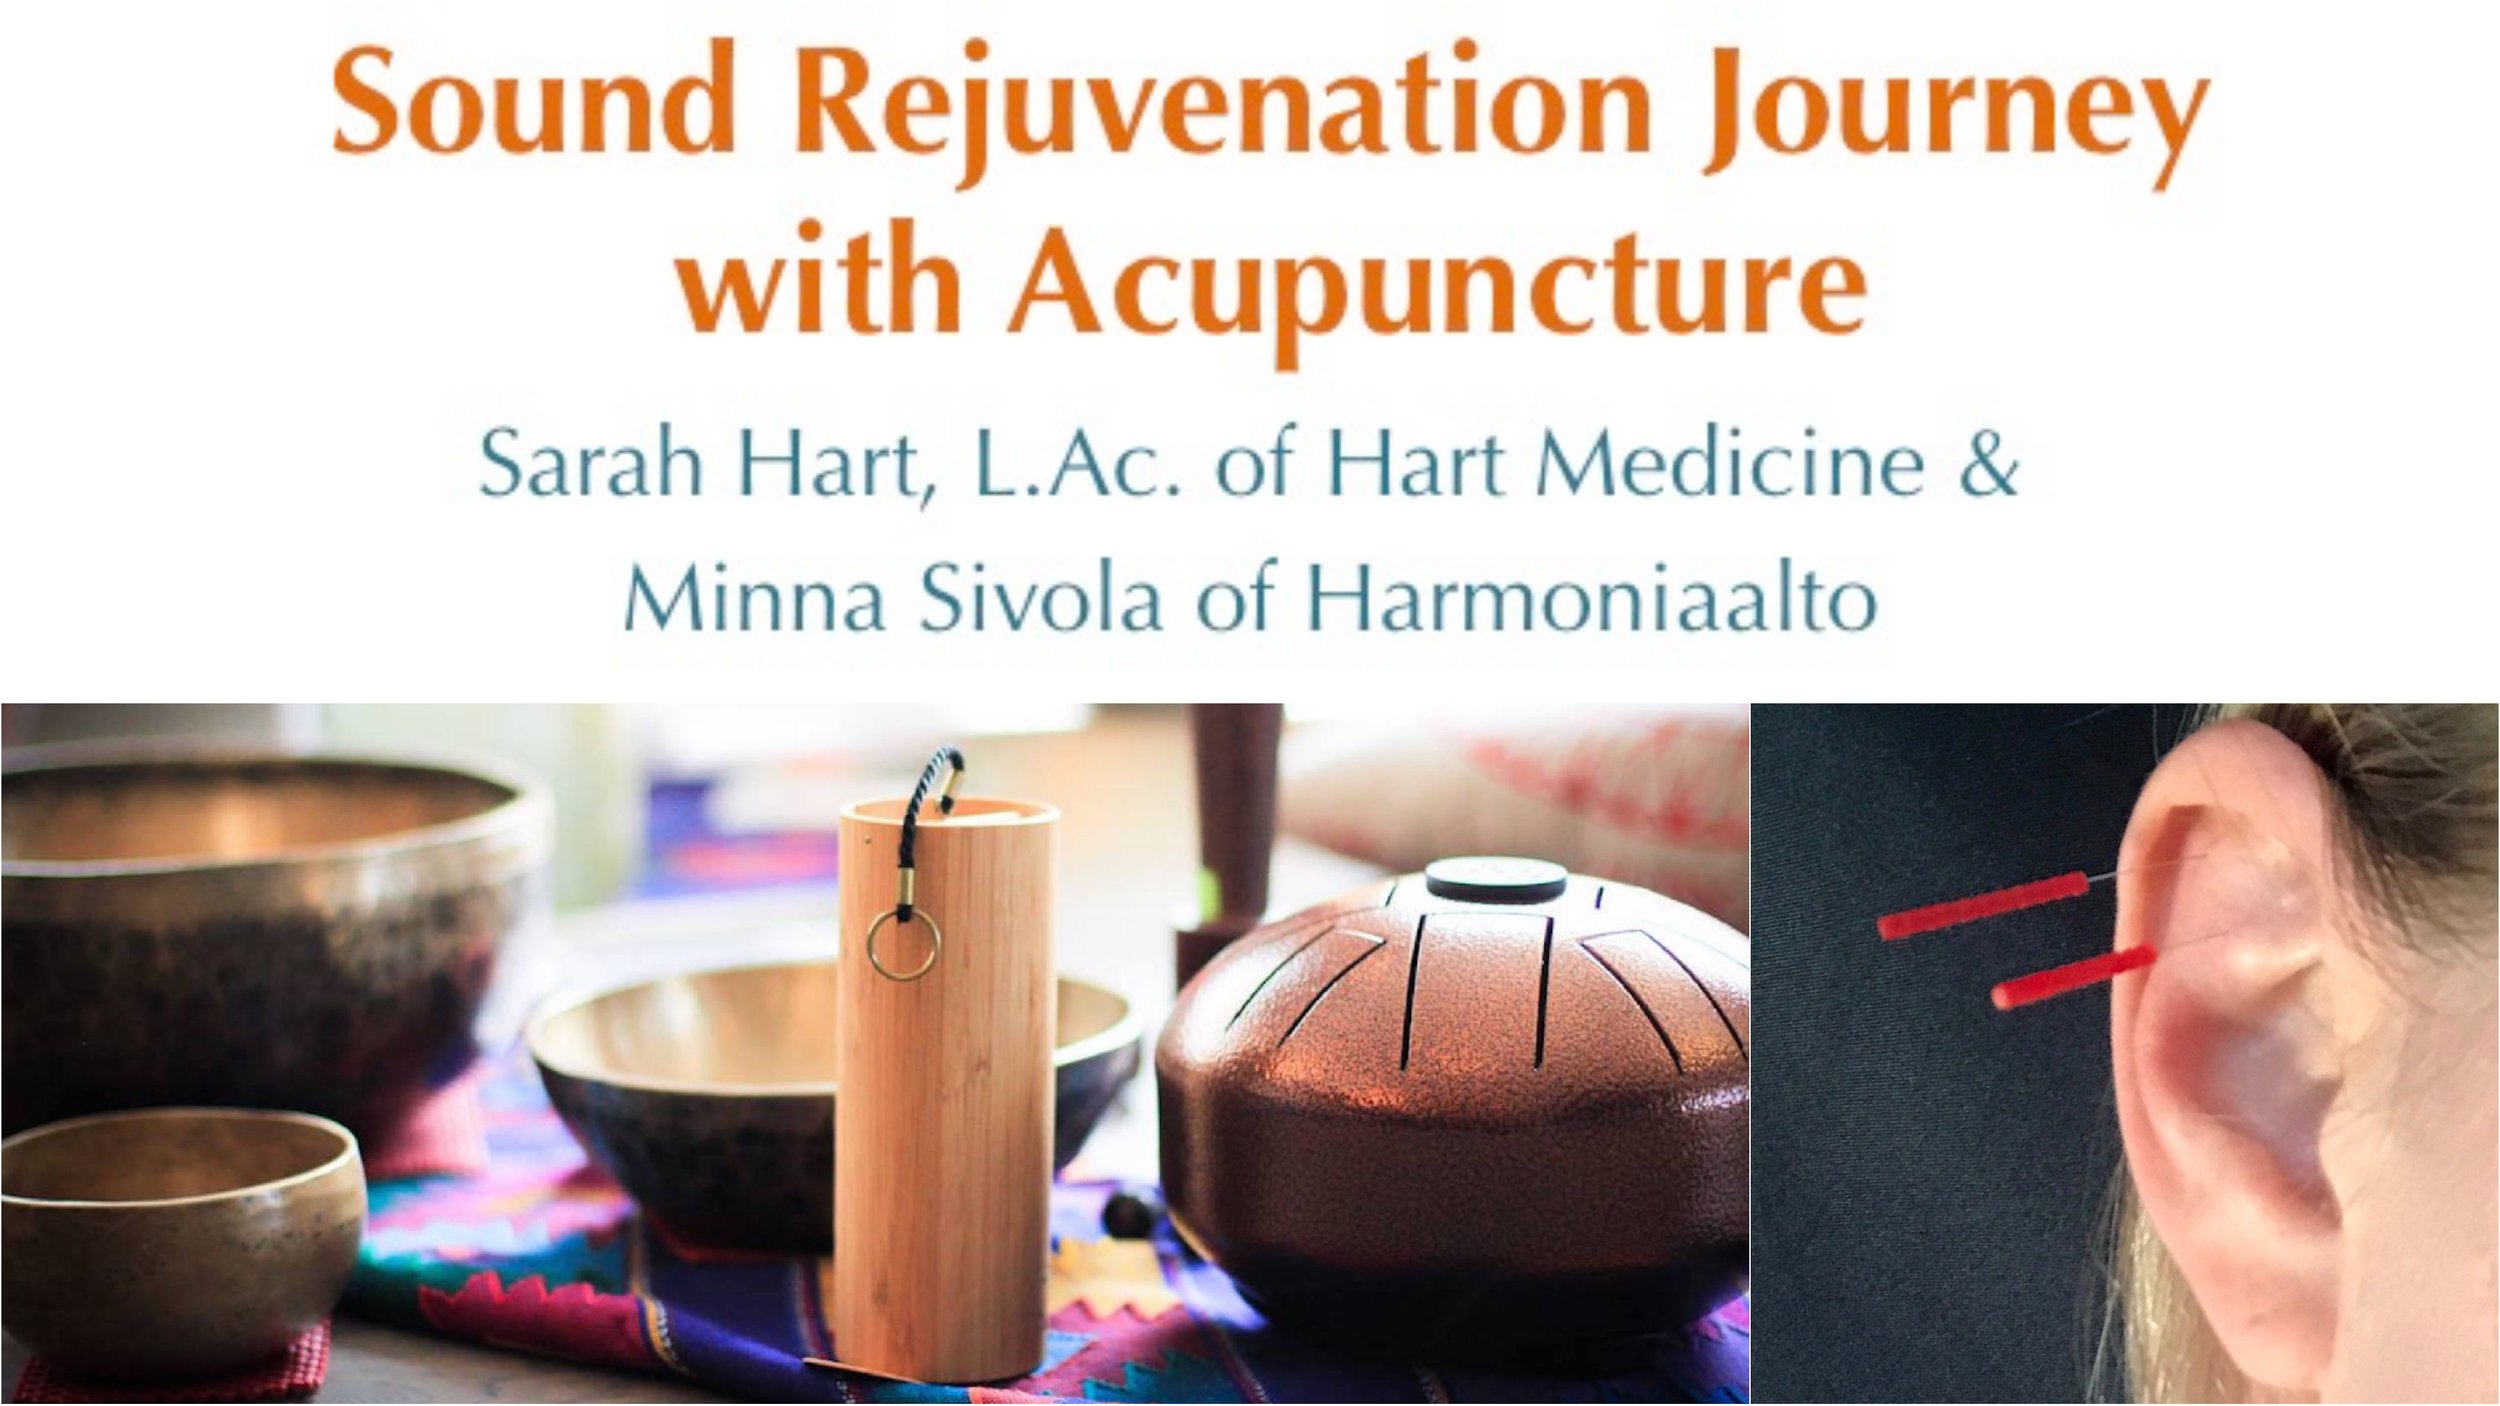 Sound Rejuvenation Journey with acupuncture.jpg